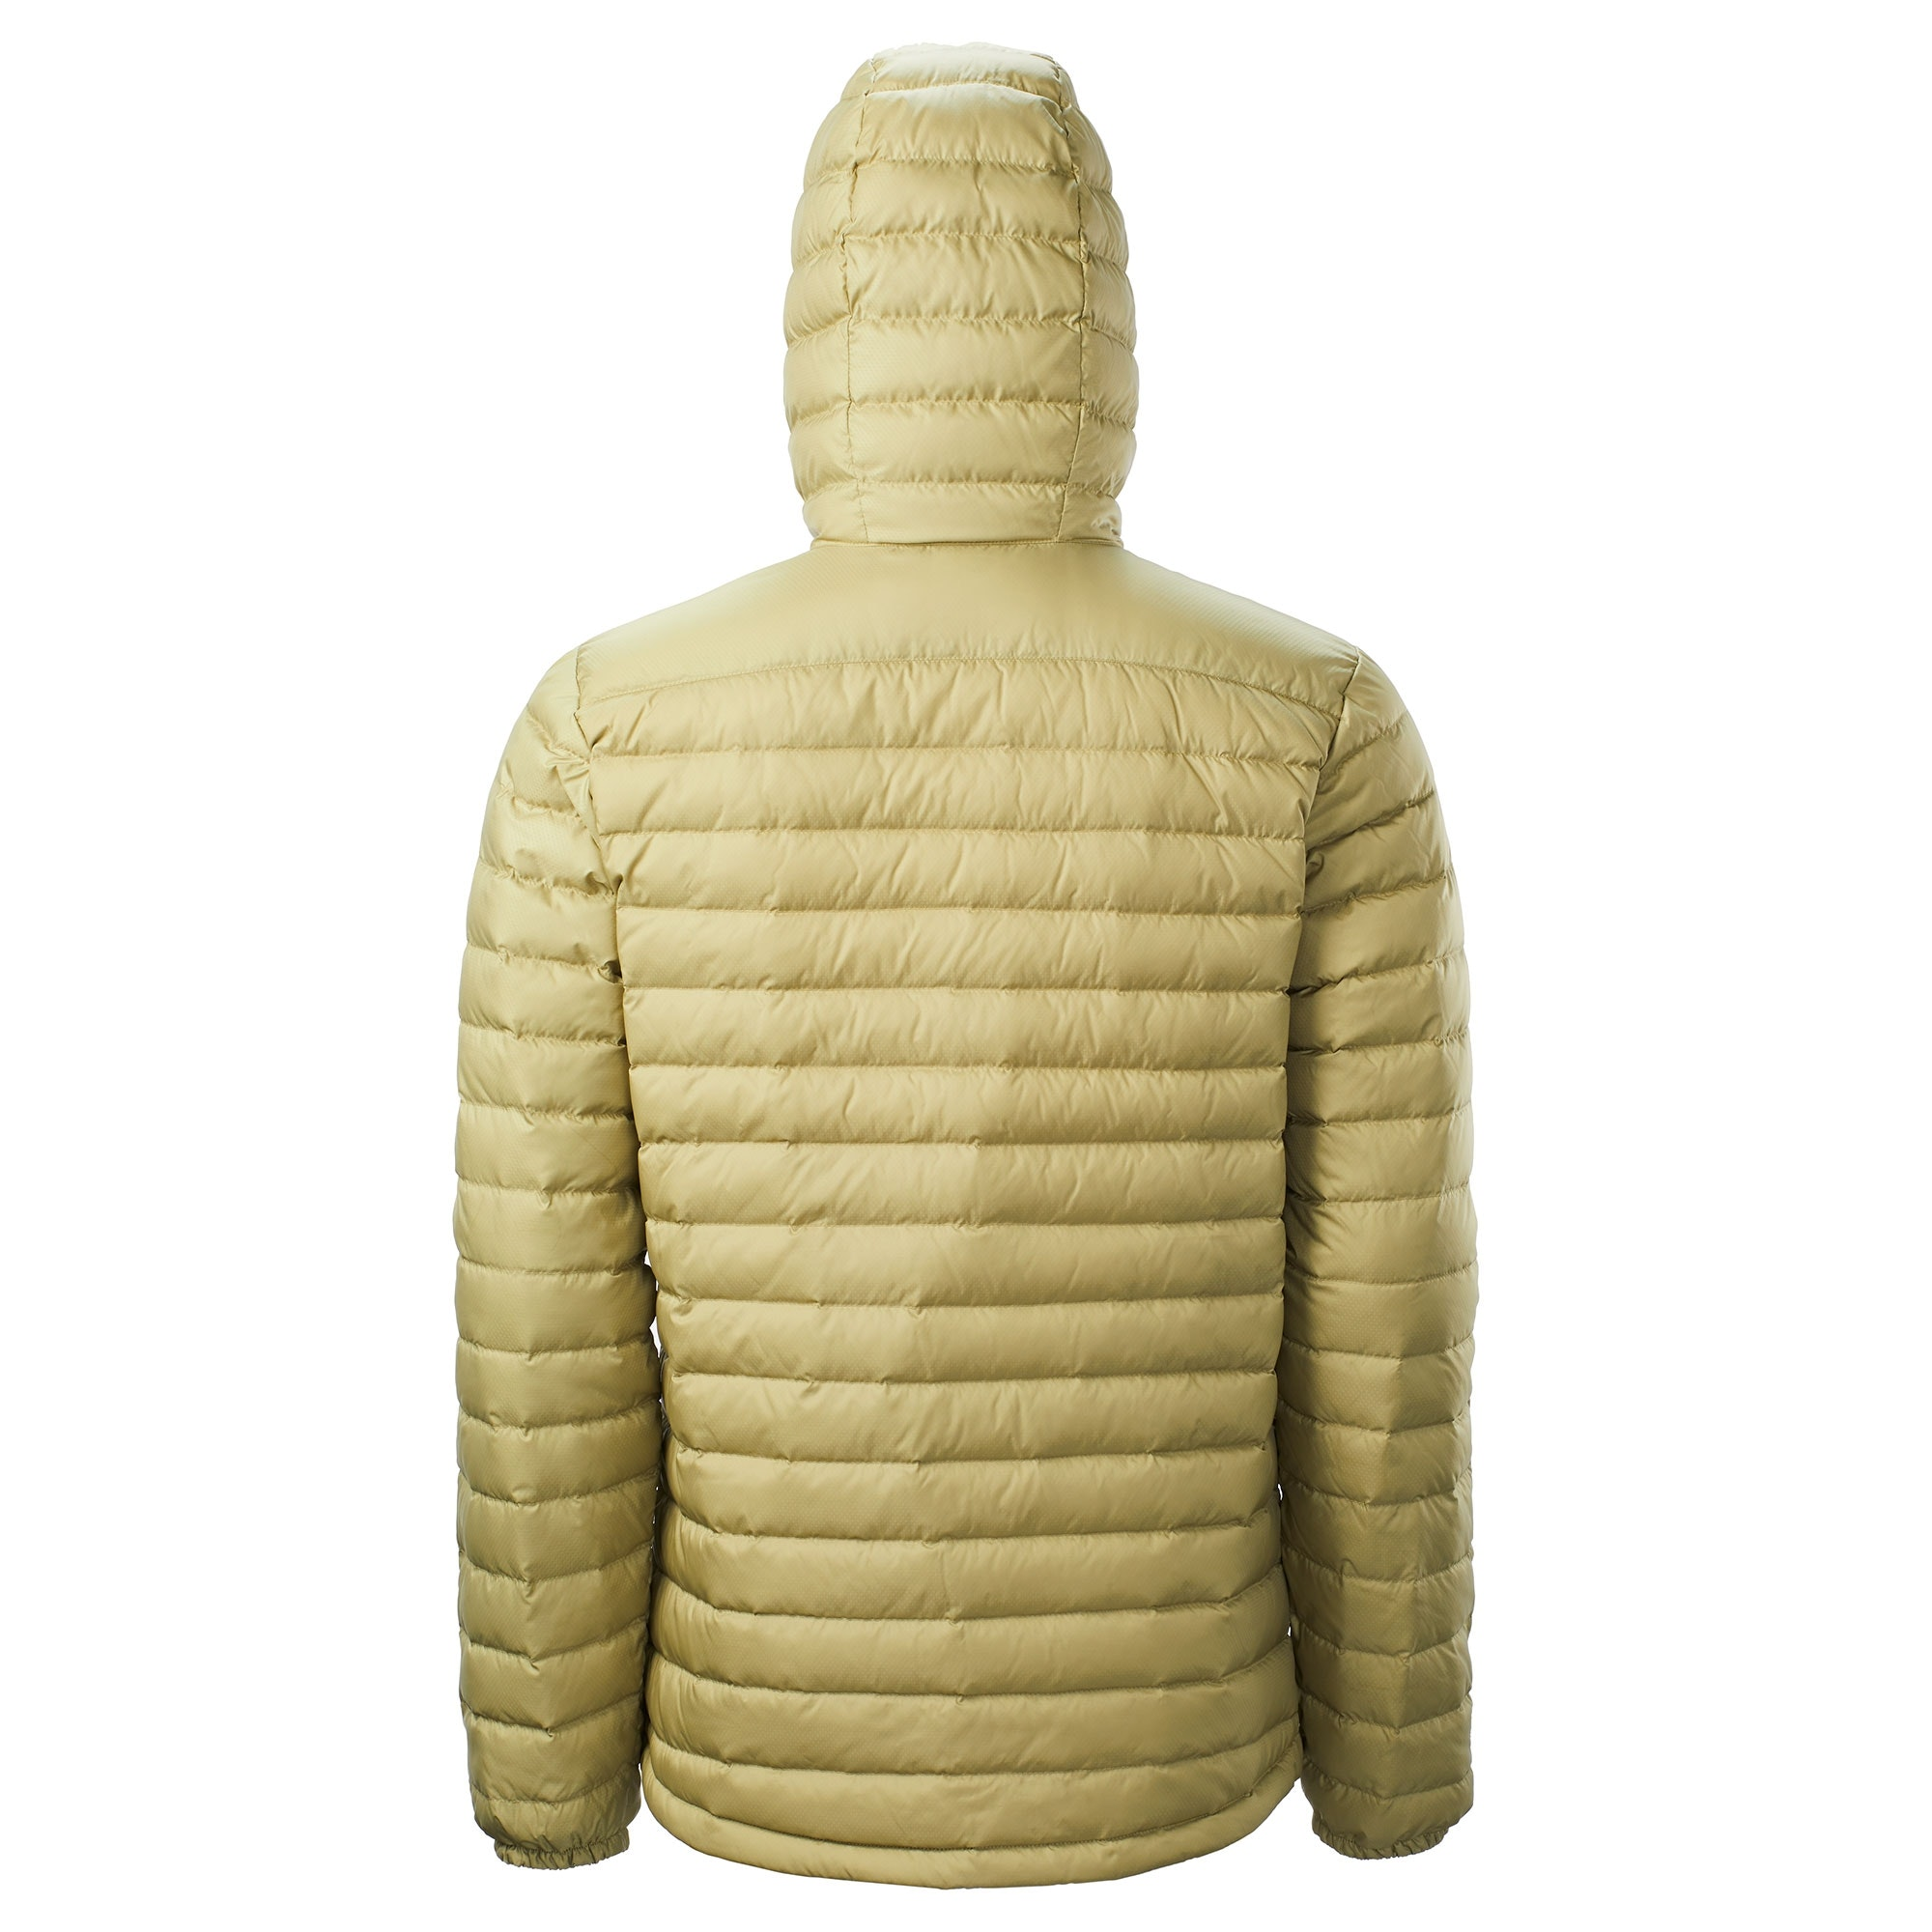 NEW-Kathmandu-Heli-Hooded-Lightweight-Compact-Water-Repellent-Warm-Men-Down thumbnail 21